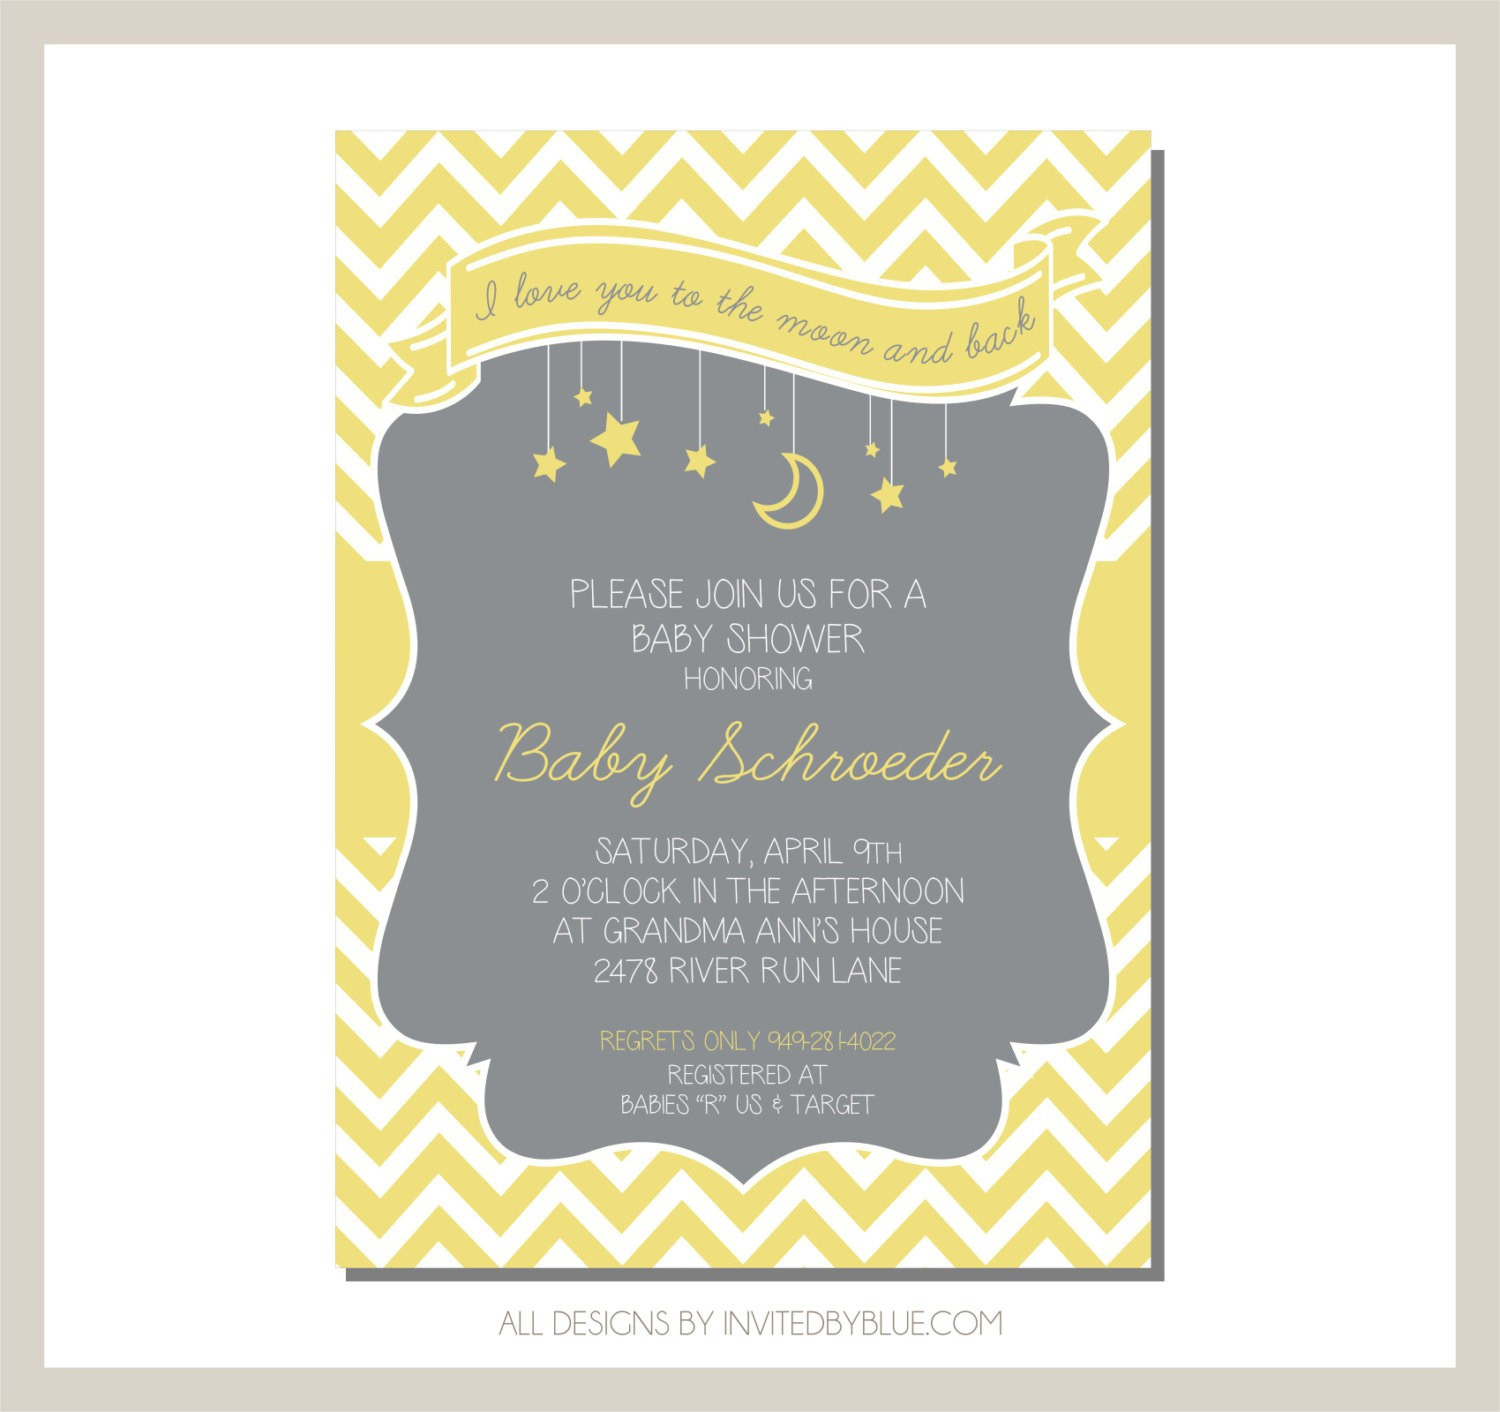 Full Size of Baby Shower:delightful Baby Shower Invitation Wording Picture Designs Baby Shower Invitation Wording Text Baby Shower Invitations Unique Baby 2 Shower Invitation Wording